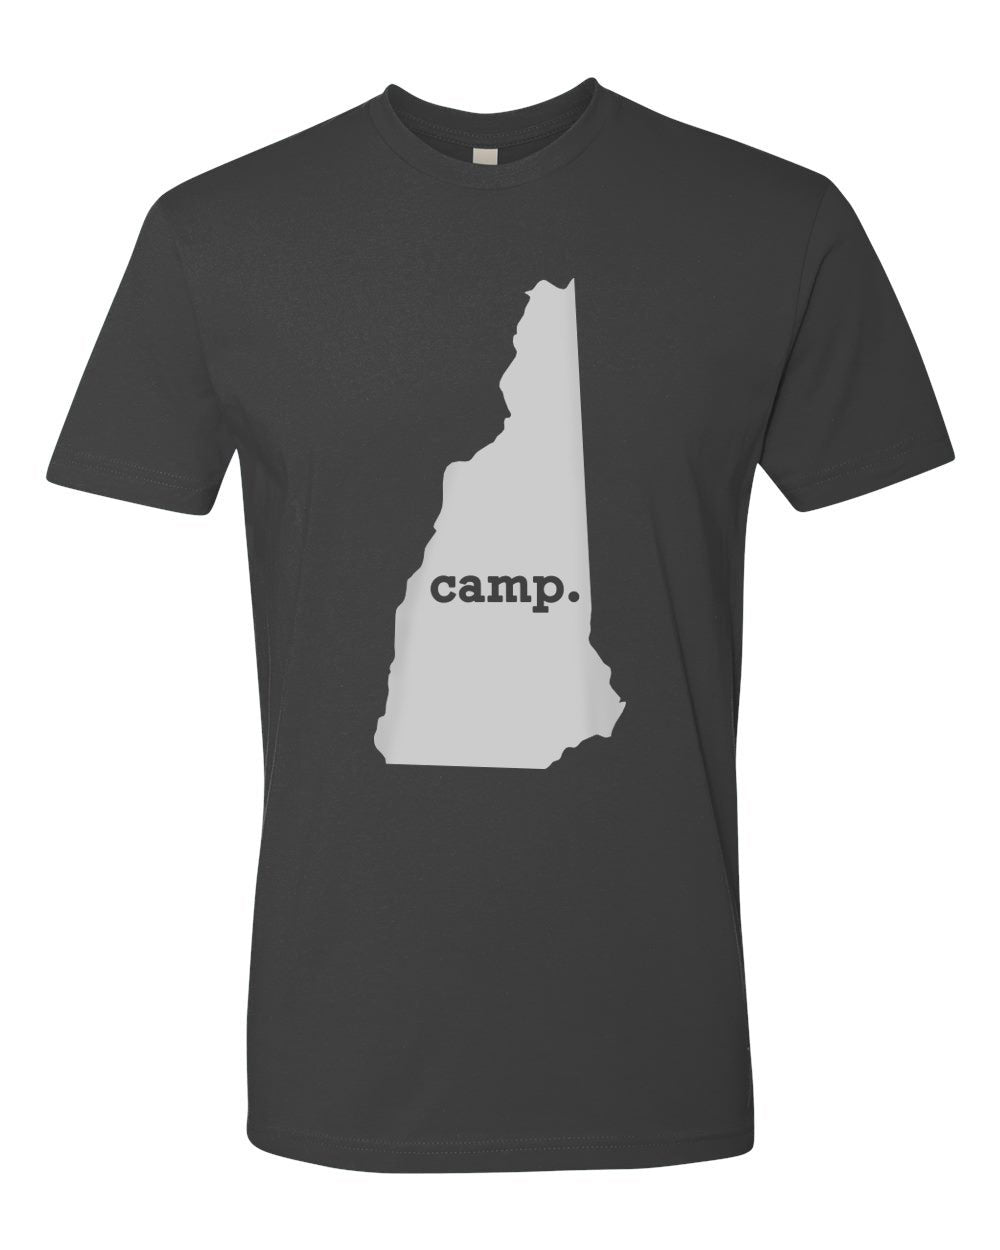 New Hampshire camp. T